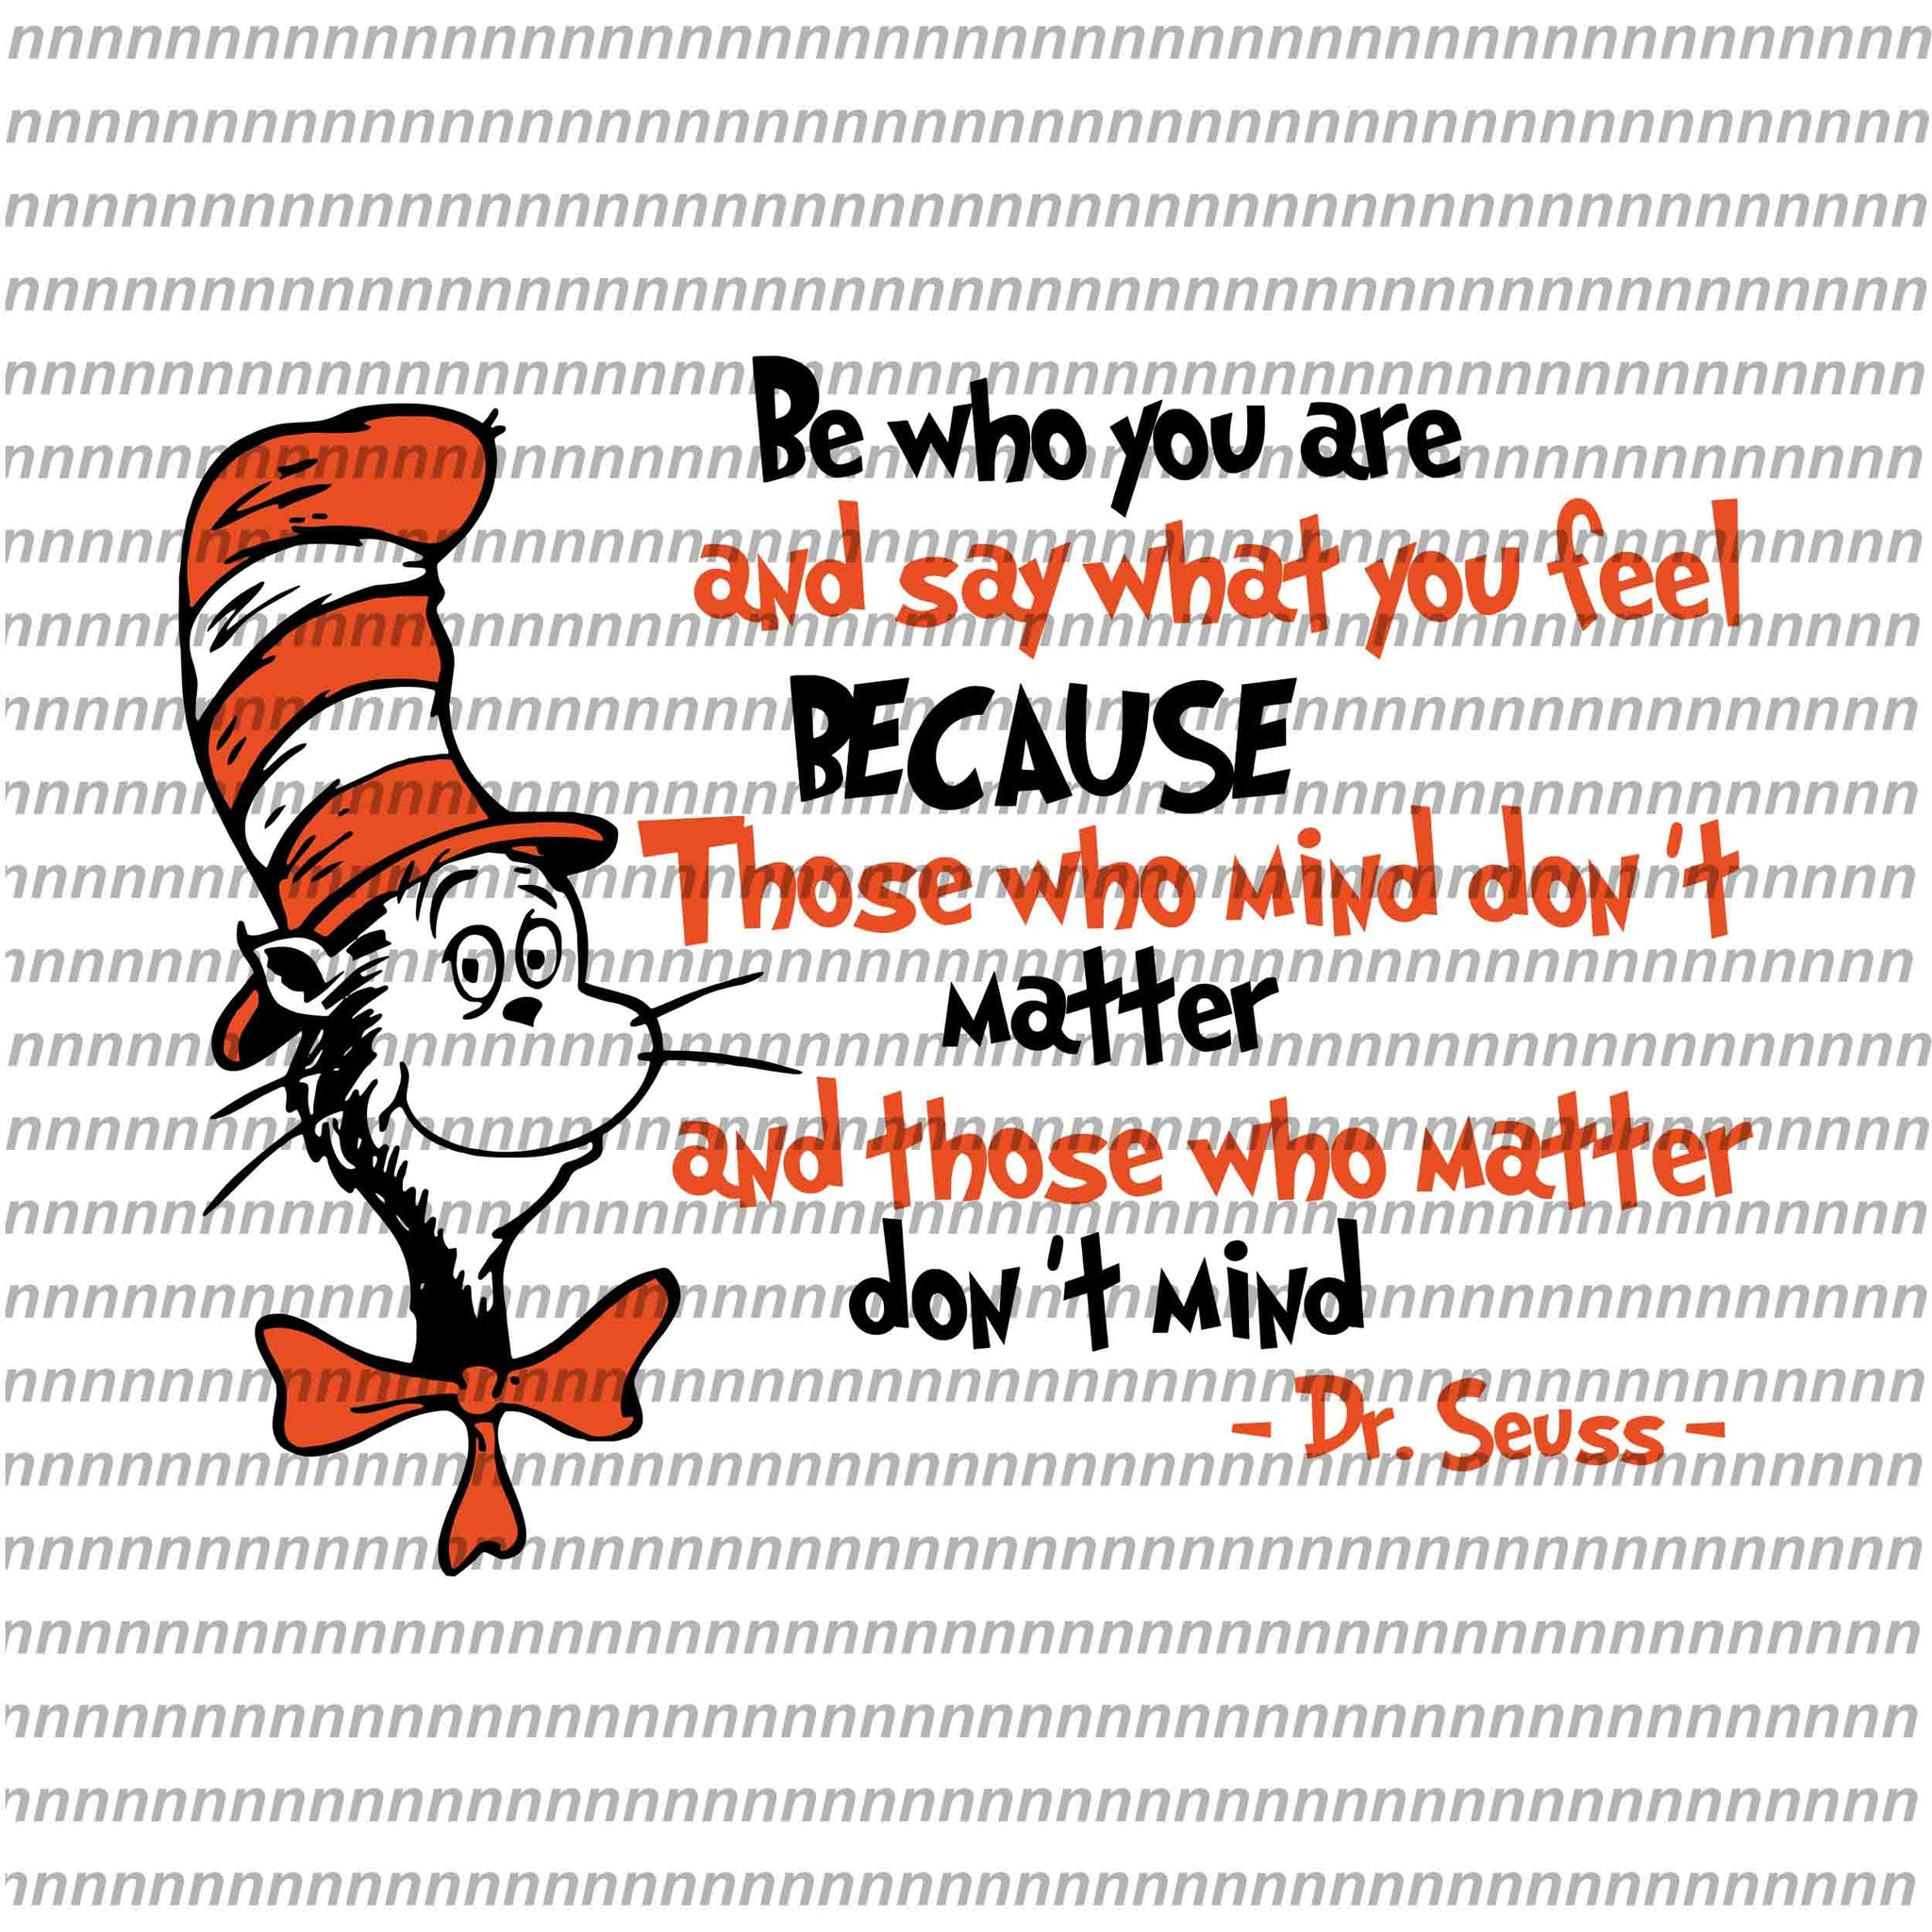 Be who you are and say what you feel, Dr Seuss svg, Dr Seuss vector,Dr Seuss quote, Dr Seuss design, Cat in the hat svg, thing 1 thing 2 thing 3, svg, png, dxf, eps file